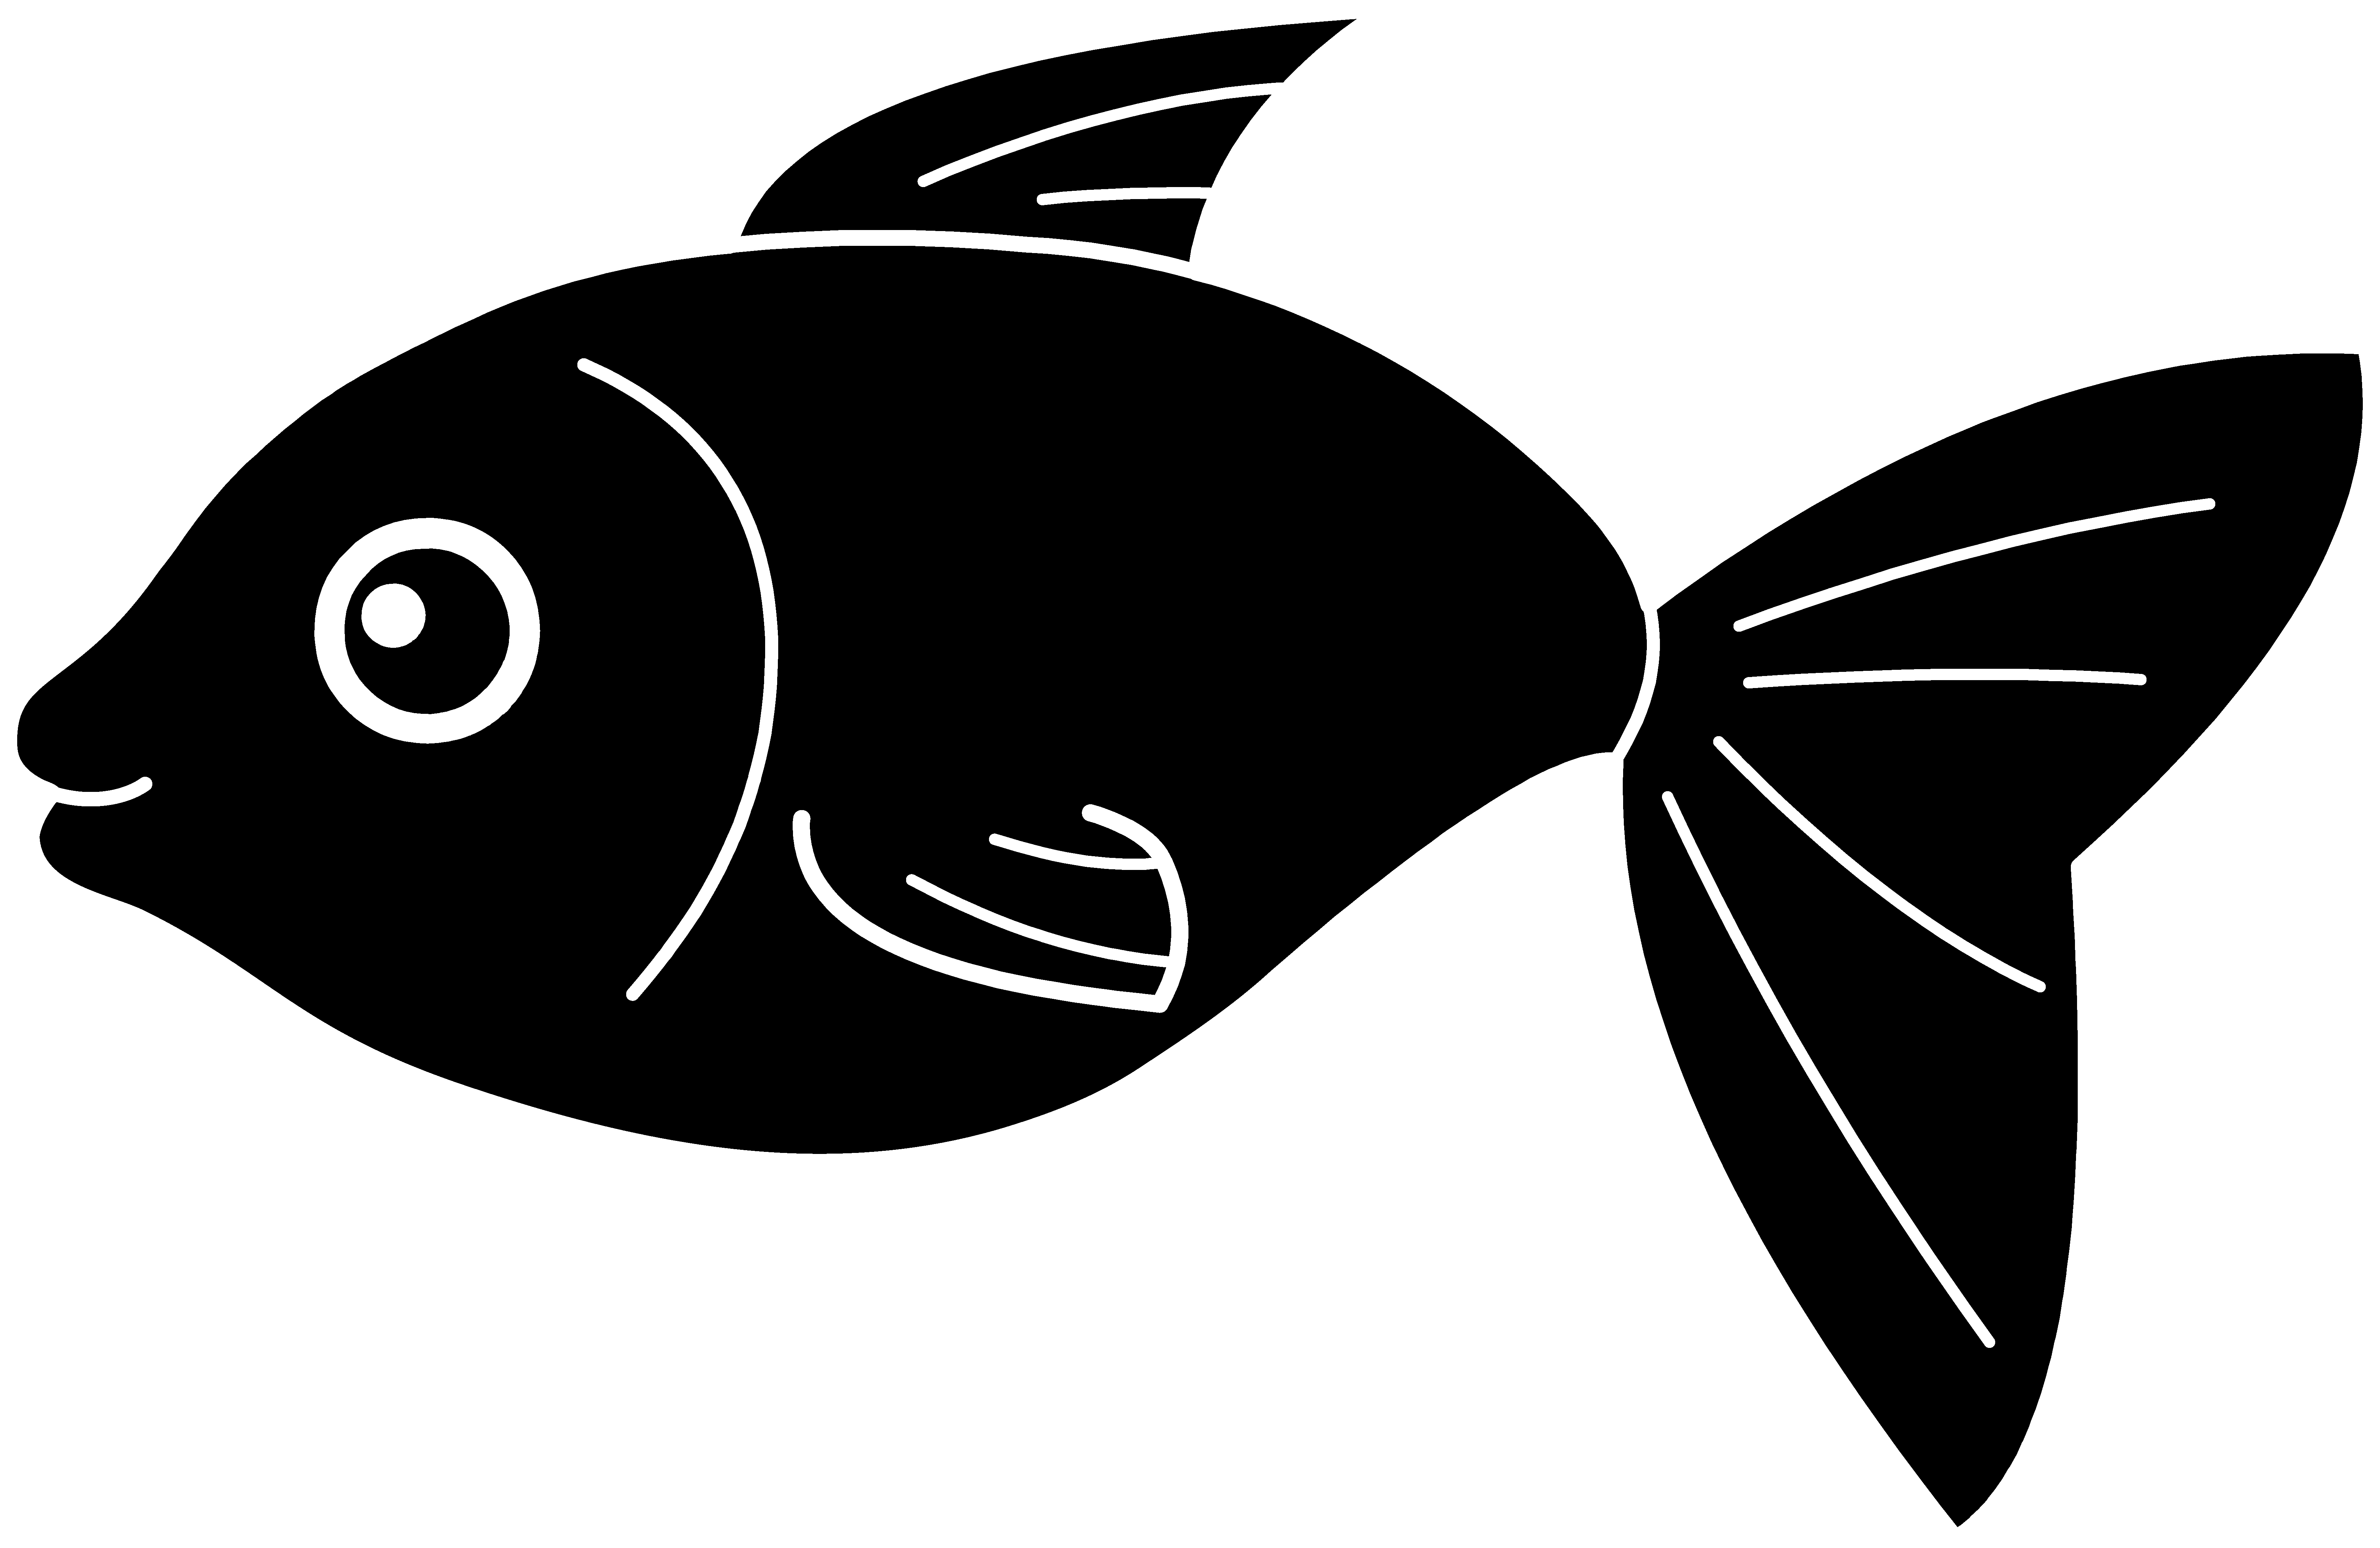 Fish clip art black and white. Silhouette pattern